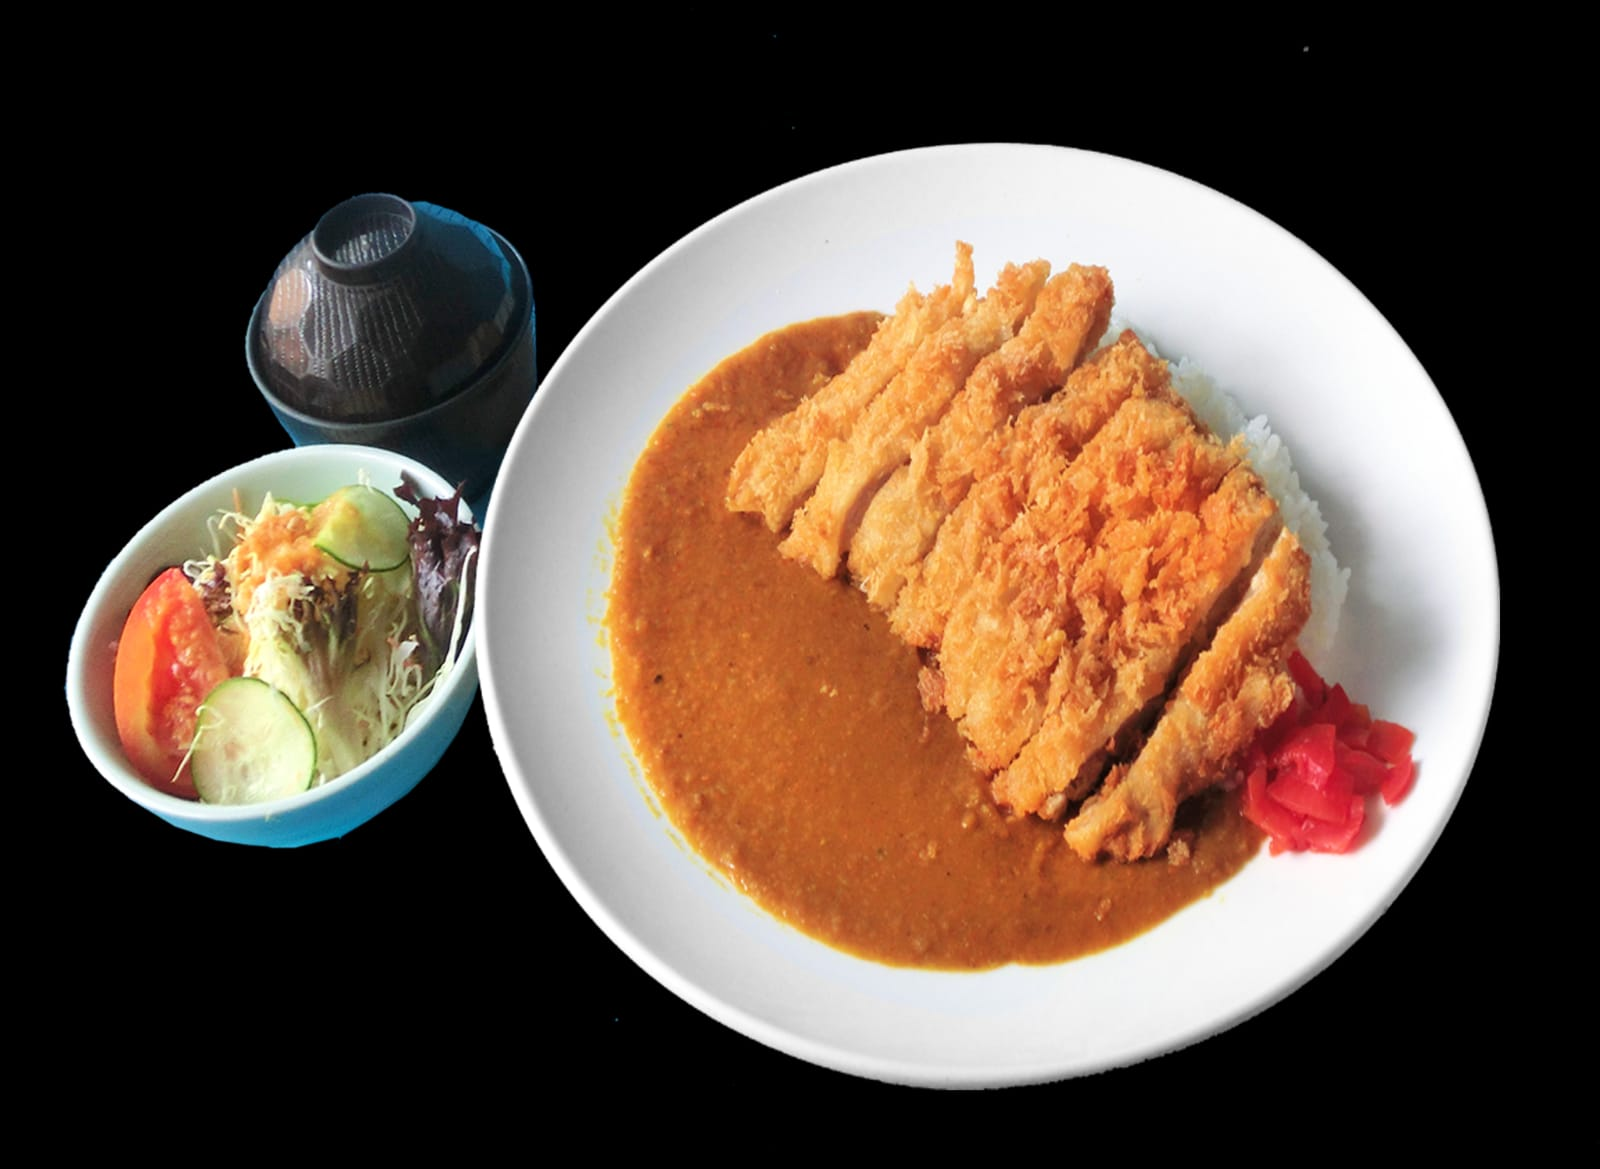 Chicken or Pork Katsu Curry